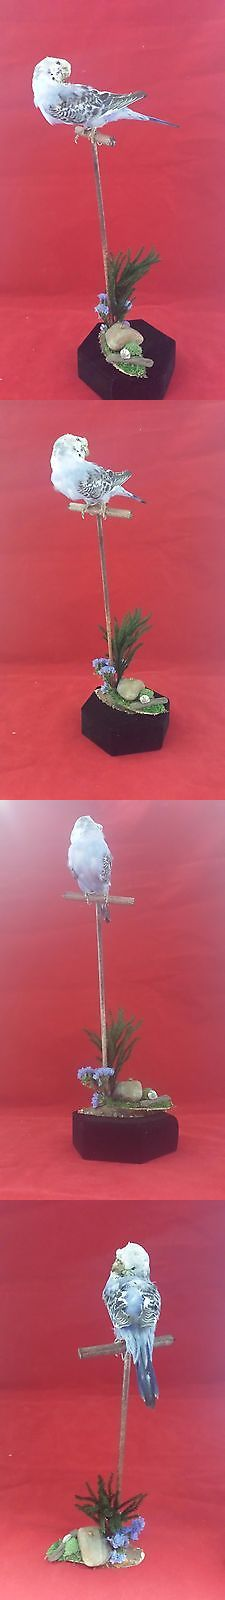 Birds 71123: Sale *Purple Parakeet Budgerigar On A Perch Display Bird-Nature Lovebird Pigeon -> BUY IT NOW ONLY: $79.99 on eBay!